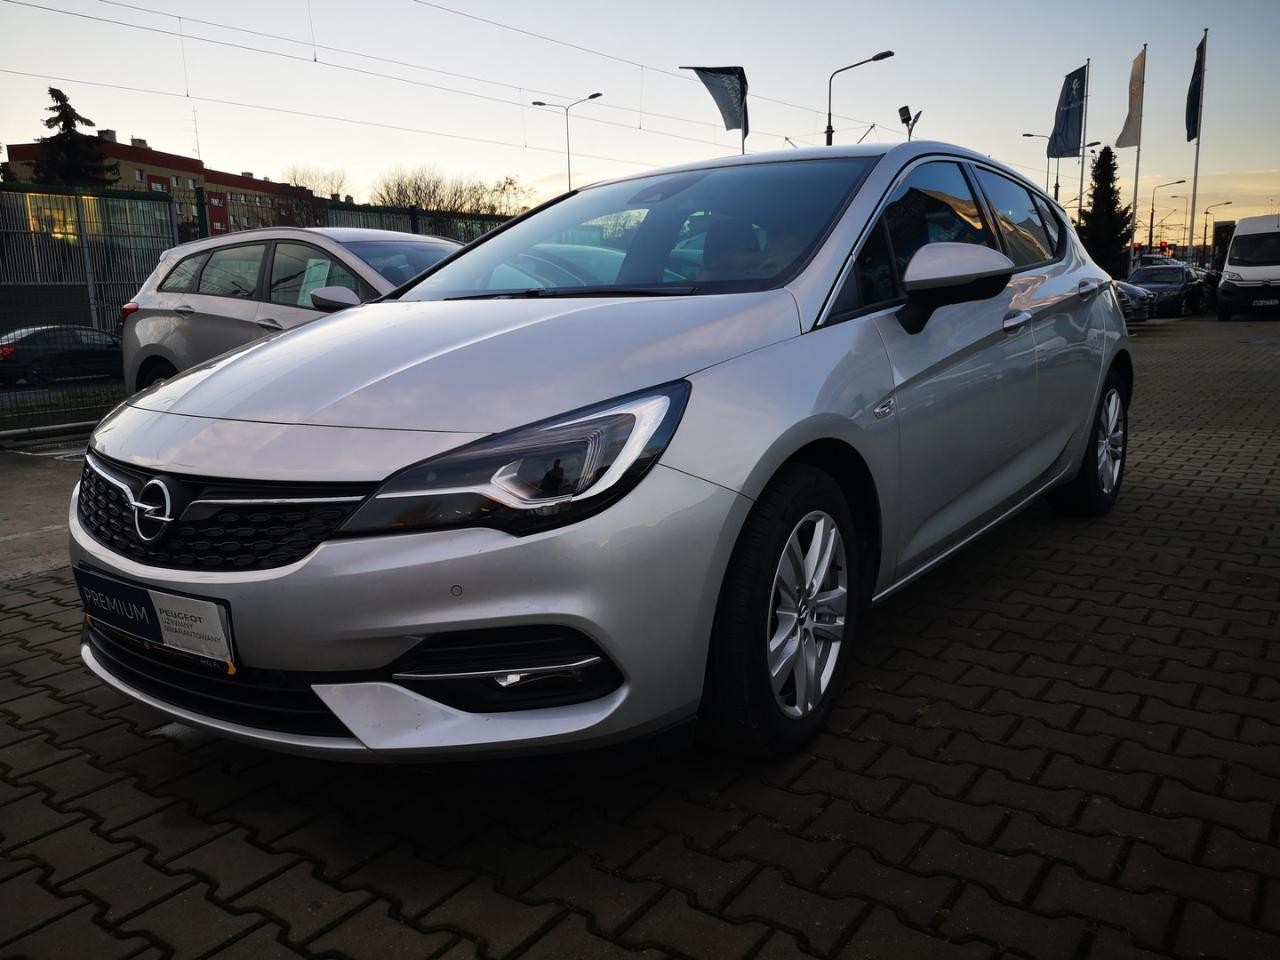 Opel Astra V 1.2 T GS Line S&S